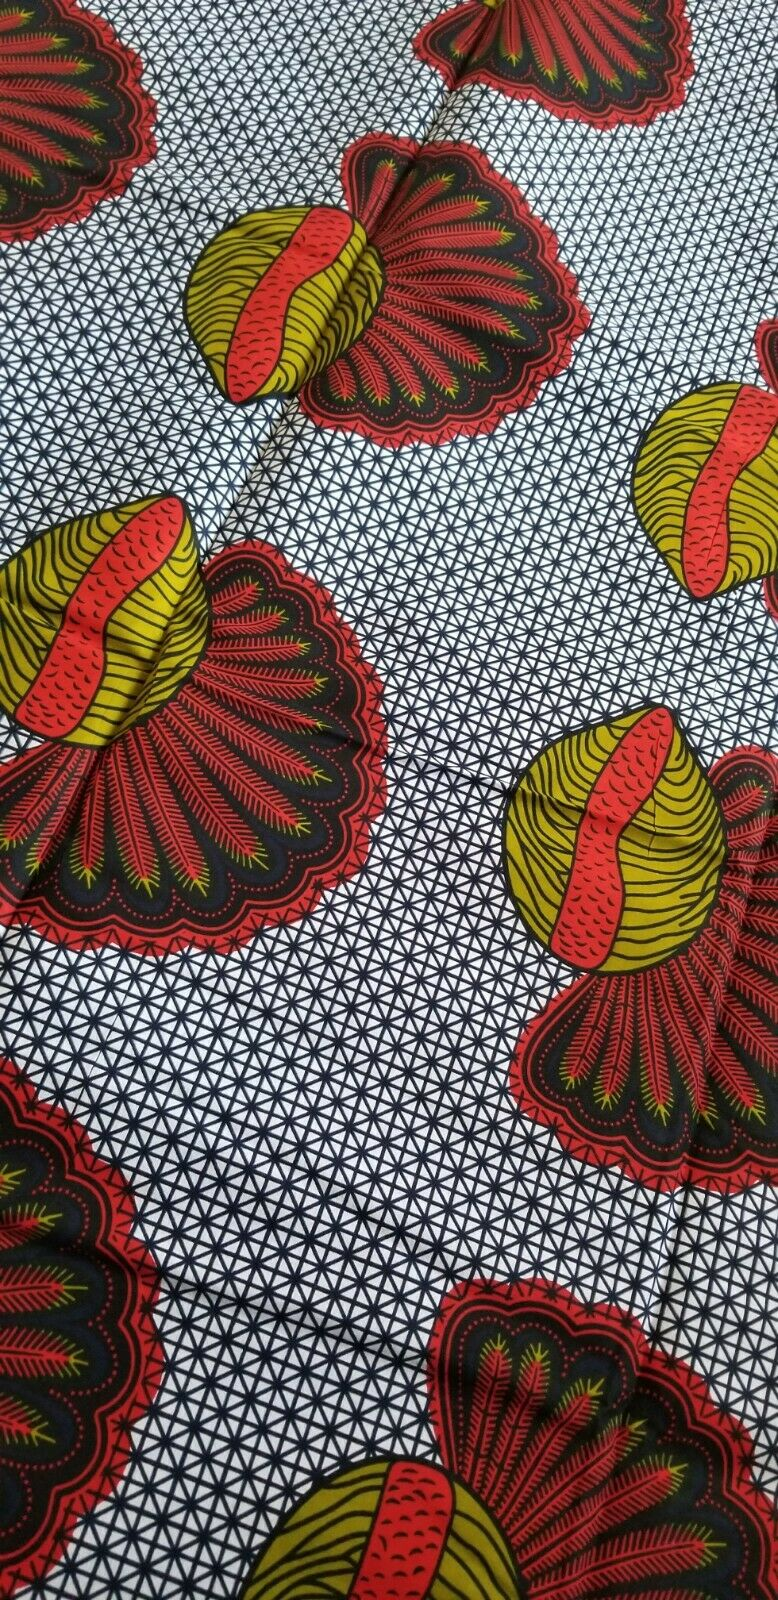 MULTICOLOR African  Print(snails~fruitful)% Cotton Fabric 1 yard(44 in.) ~$6.60